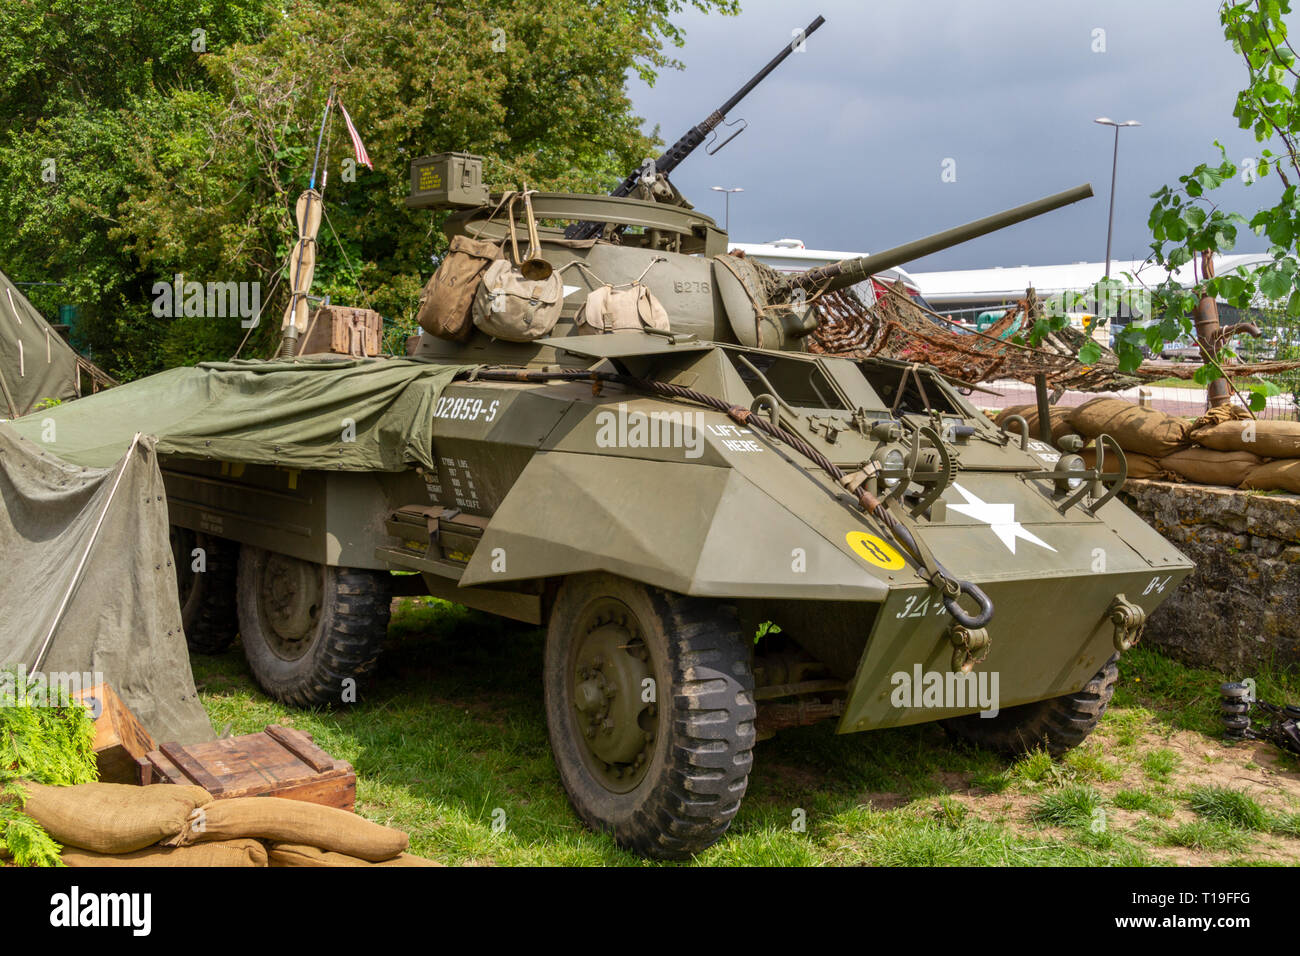 A M8 Light Armored Car, Part of the D-Day 70th Anniversary